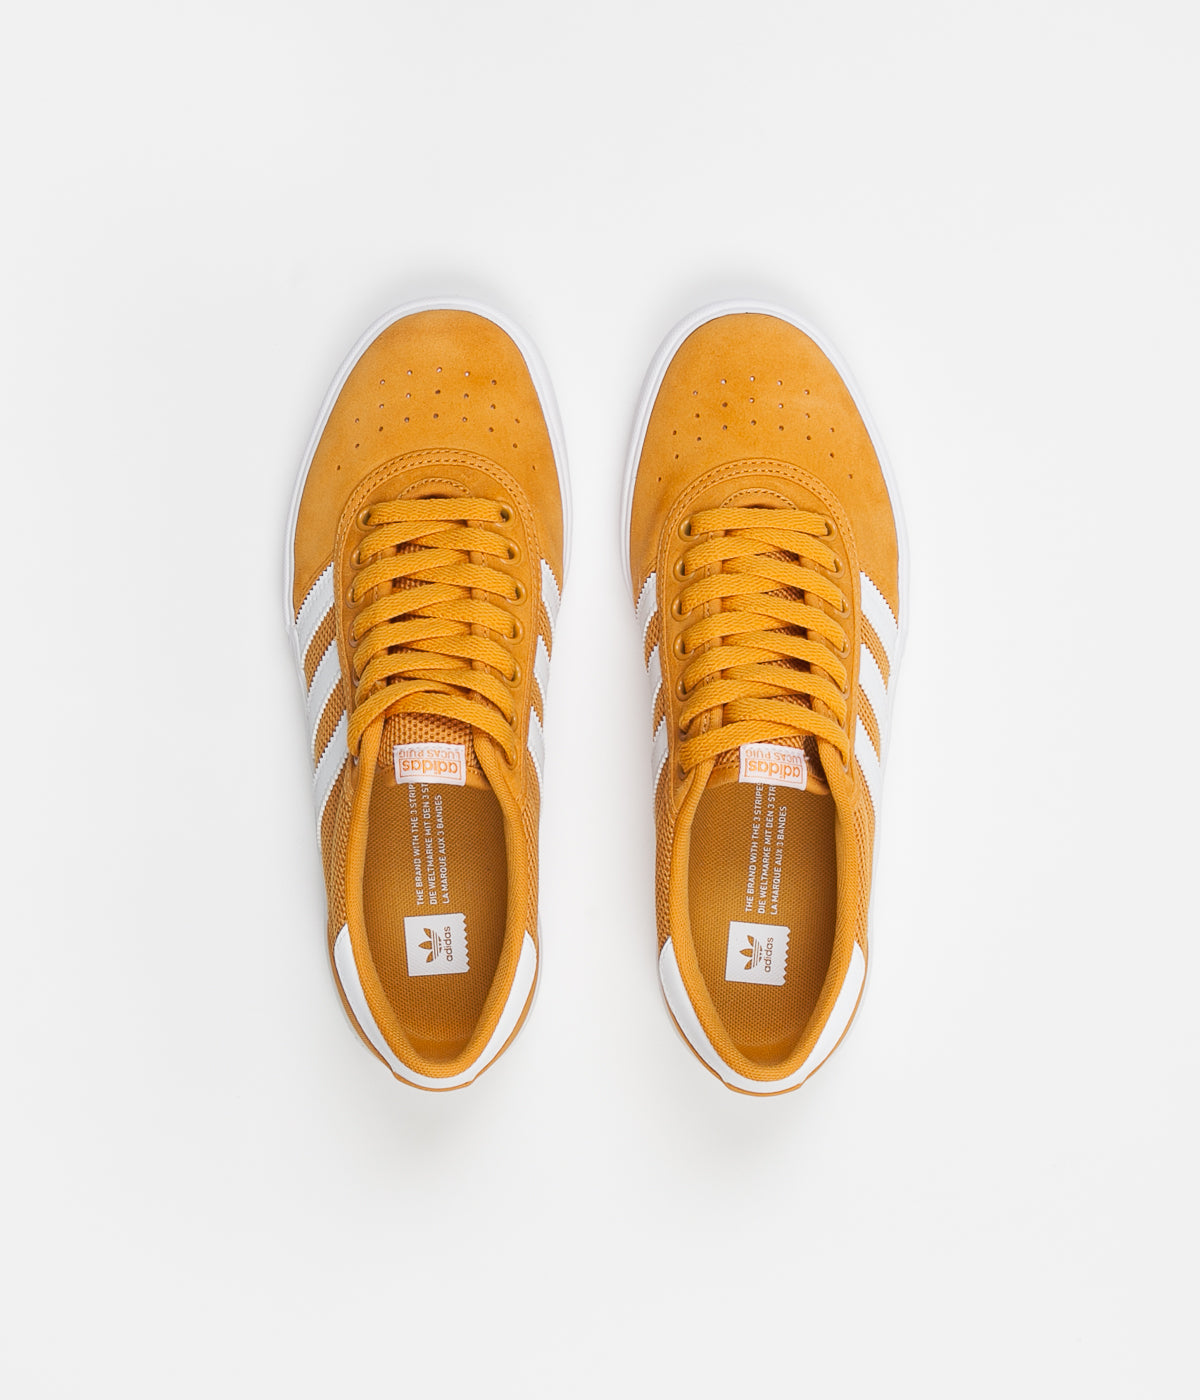 Adidas Lucas Premiere Shoes - Tactile Yellow / White / White